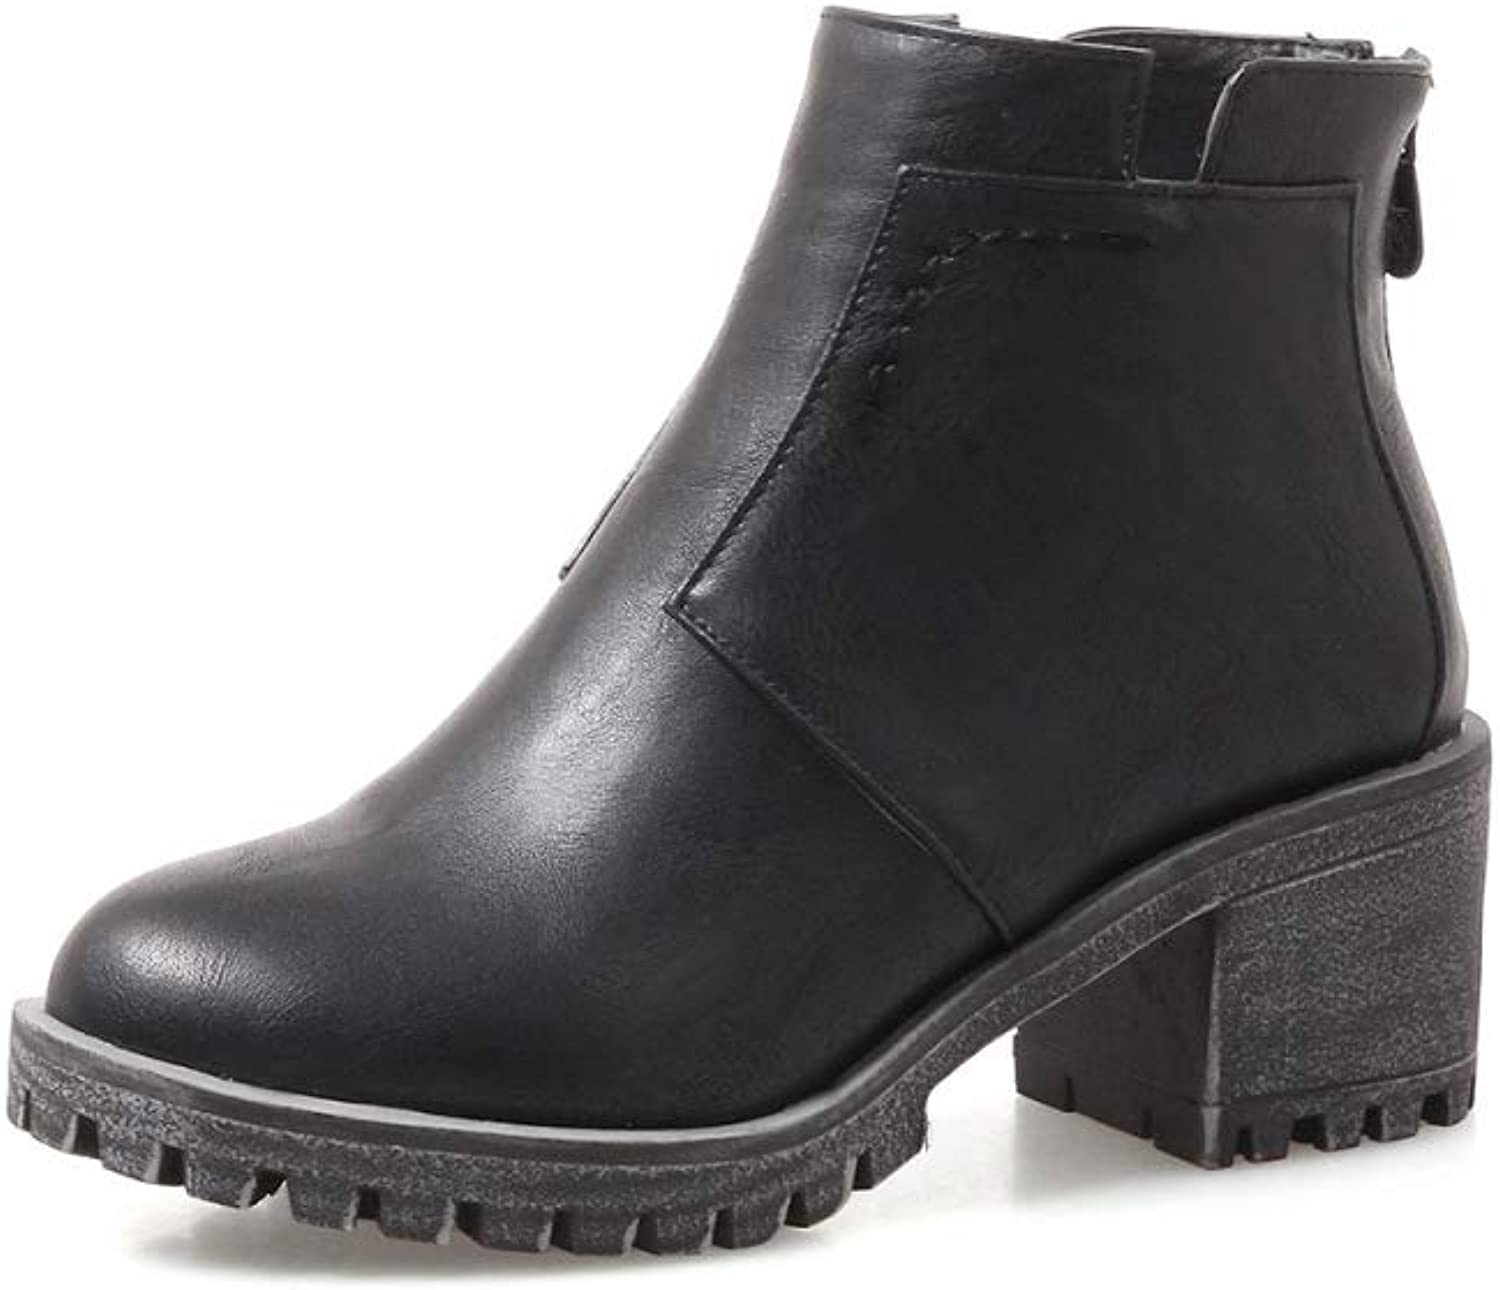 Women Fashion Ankle Boots 2018 Autumn Heeled Chelsea Boots Size 3143